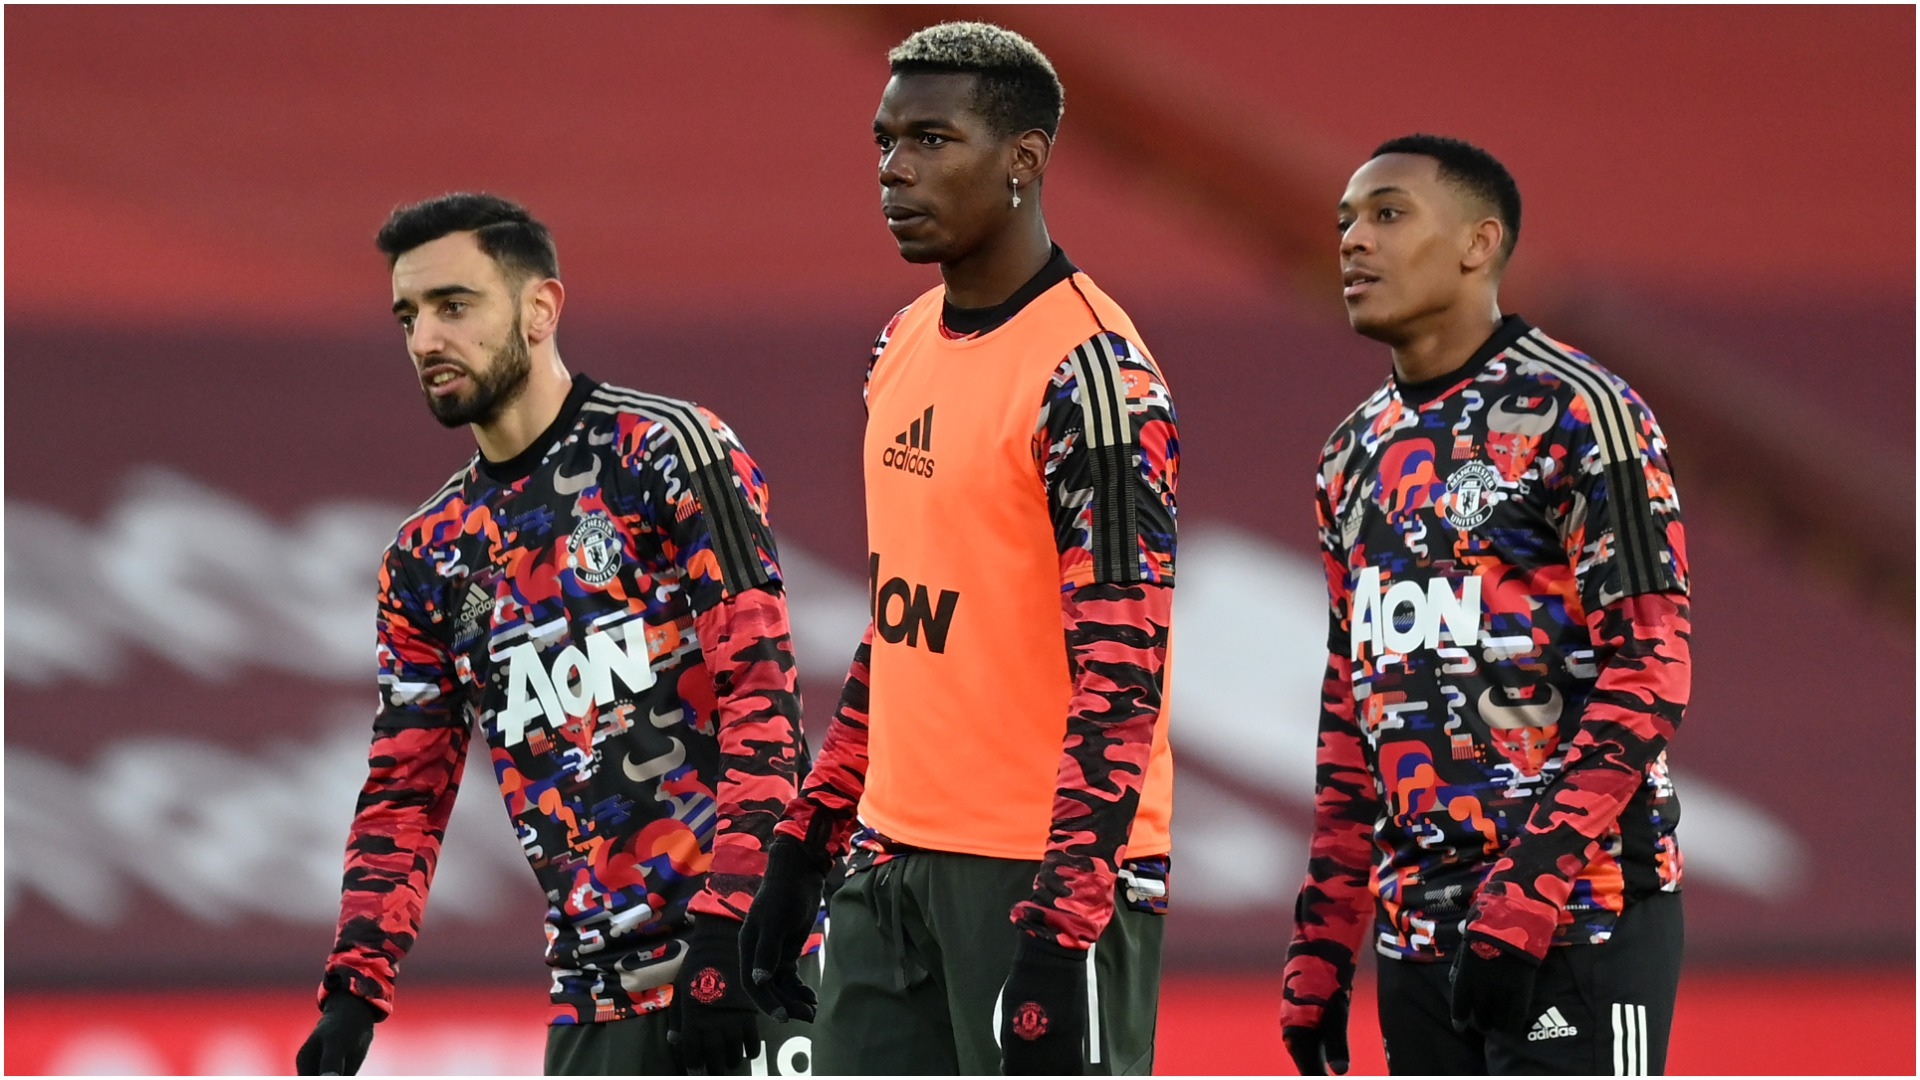 Berbatov impressed by focused Pogba: I would like him to stay at Man Utd